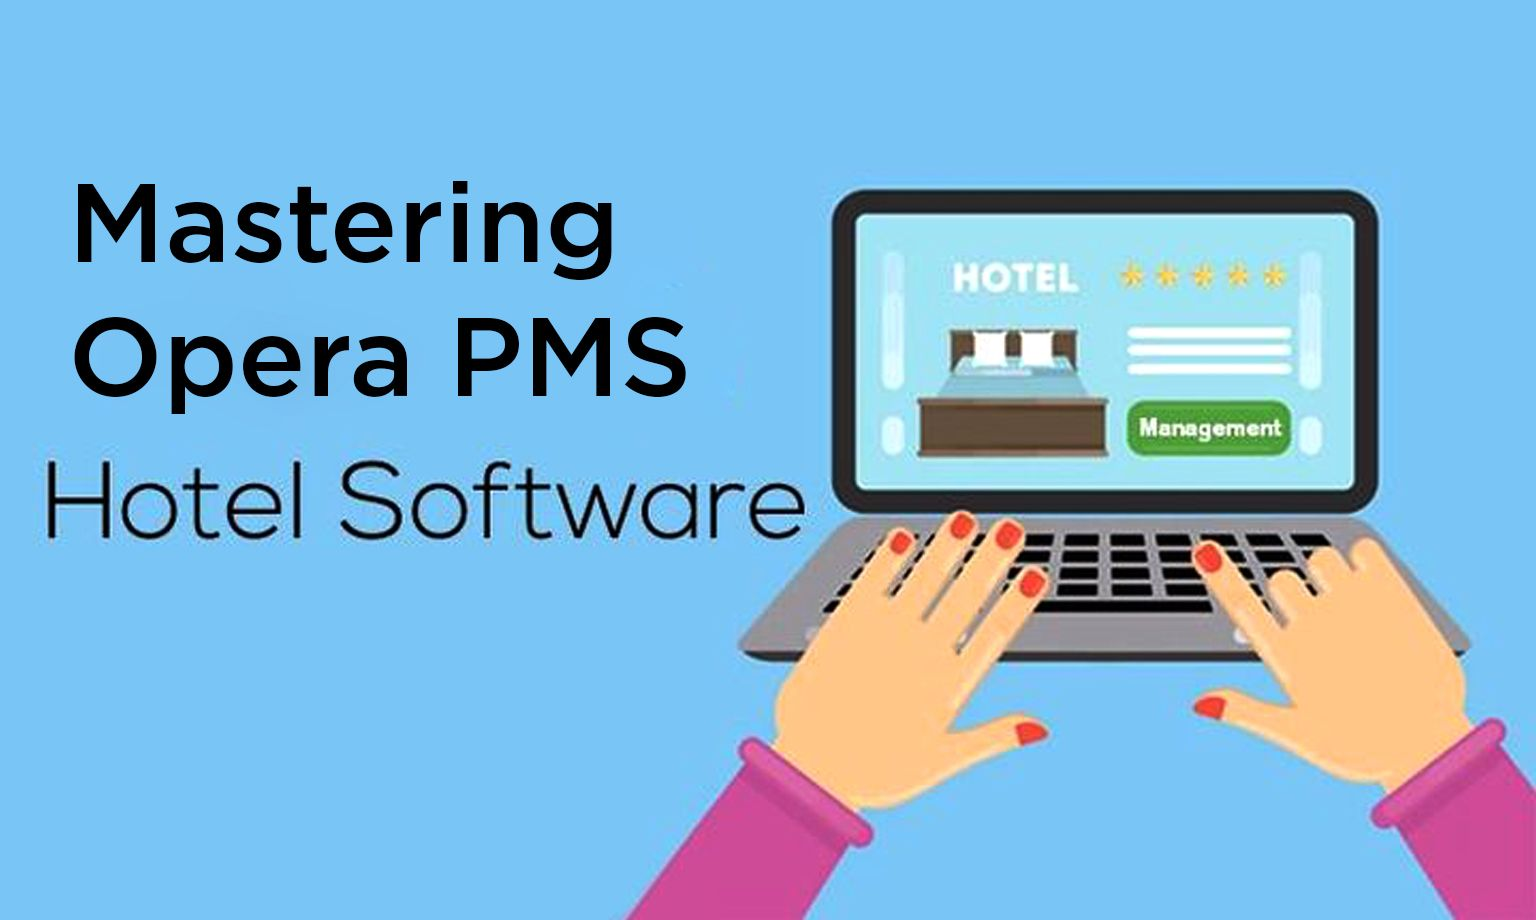 25% FREE Mastering Opera PMS Hotel Software - Global Edulink